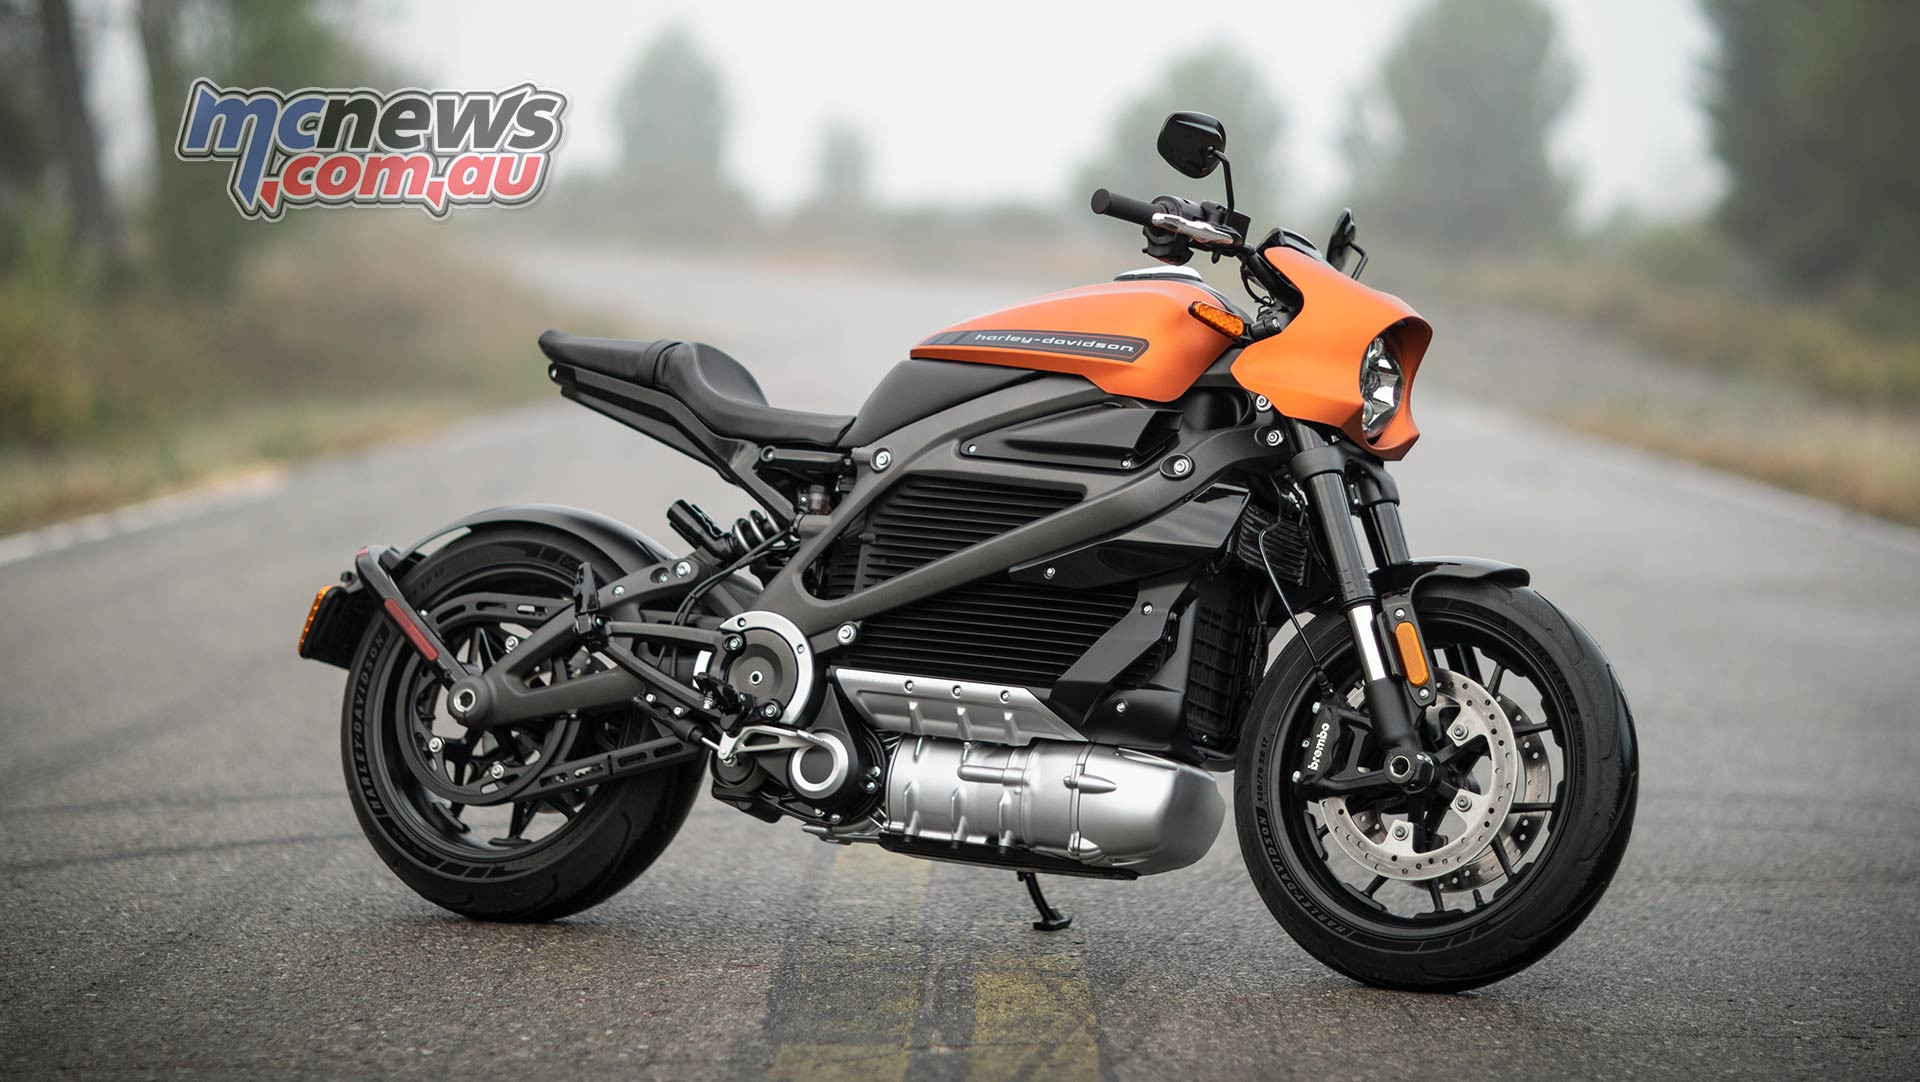 Harley Davidson Livewire Likely To Be Around 44k Aud